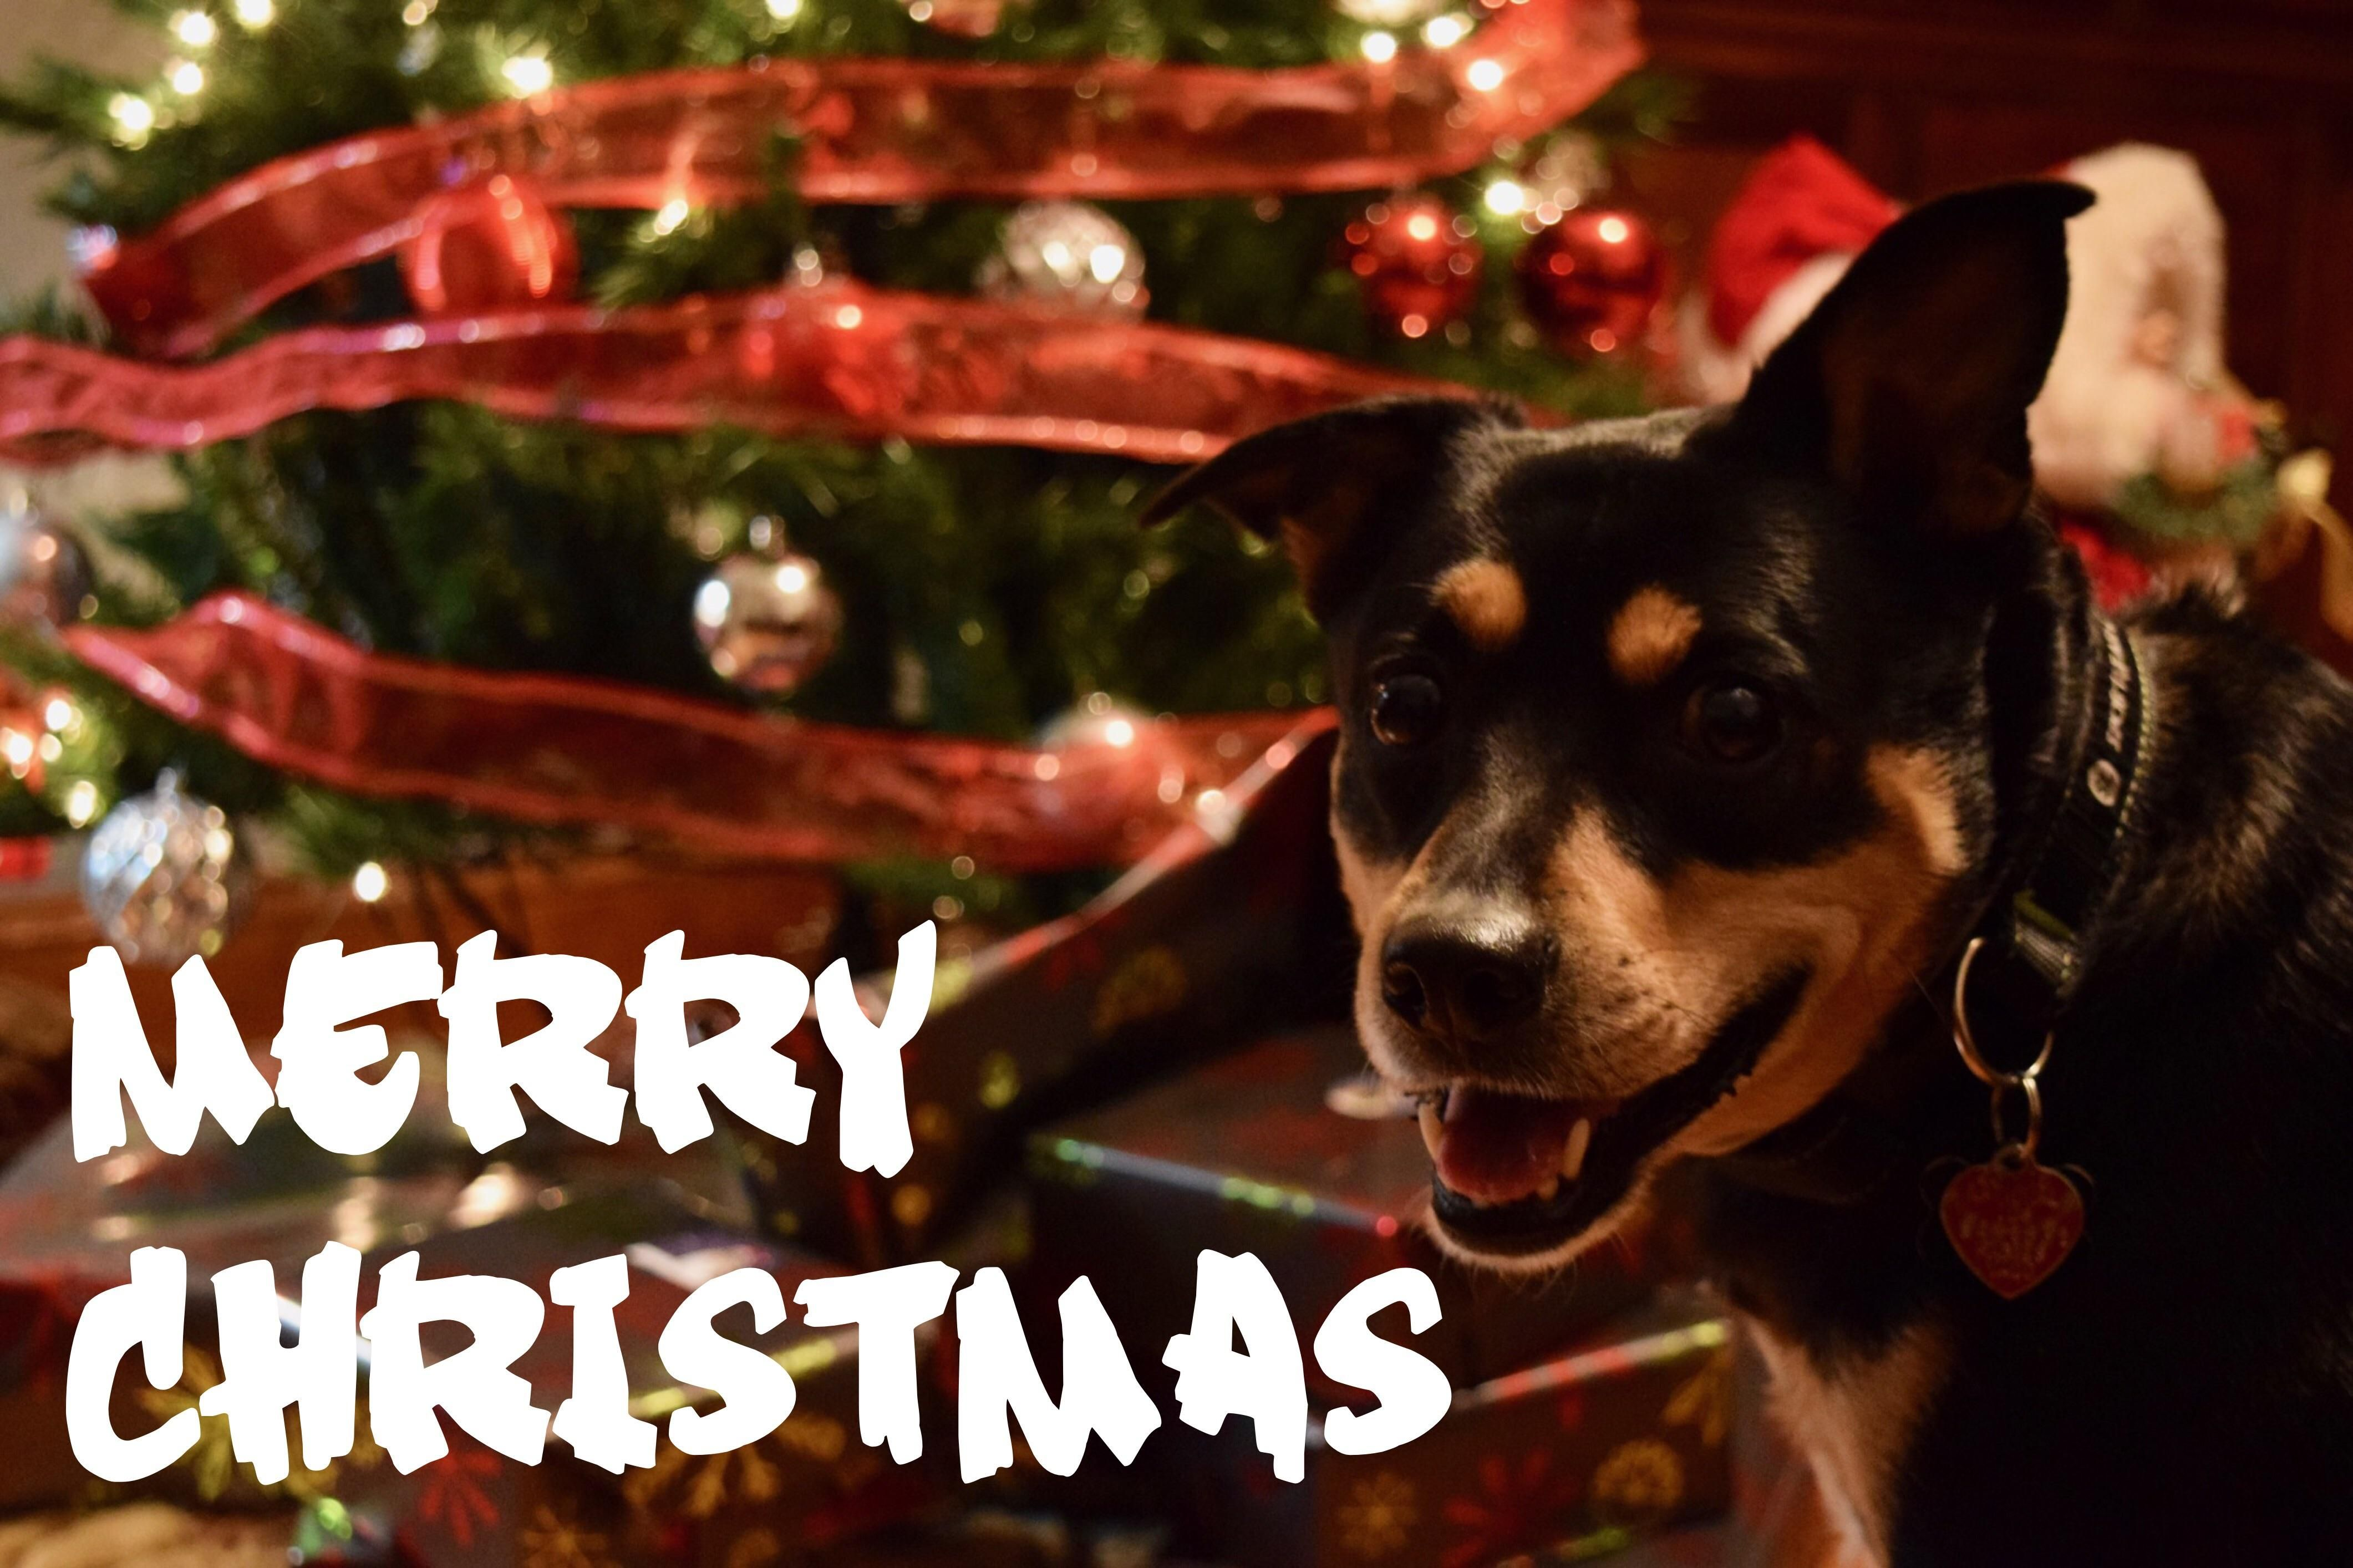 Merry Christmas From Me and Webster!!!